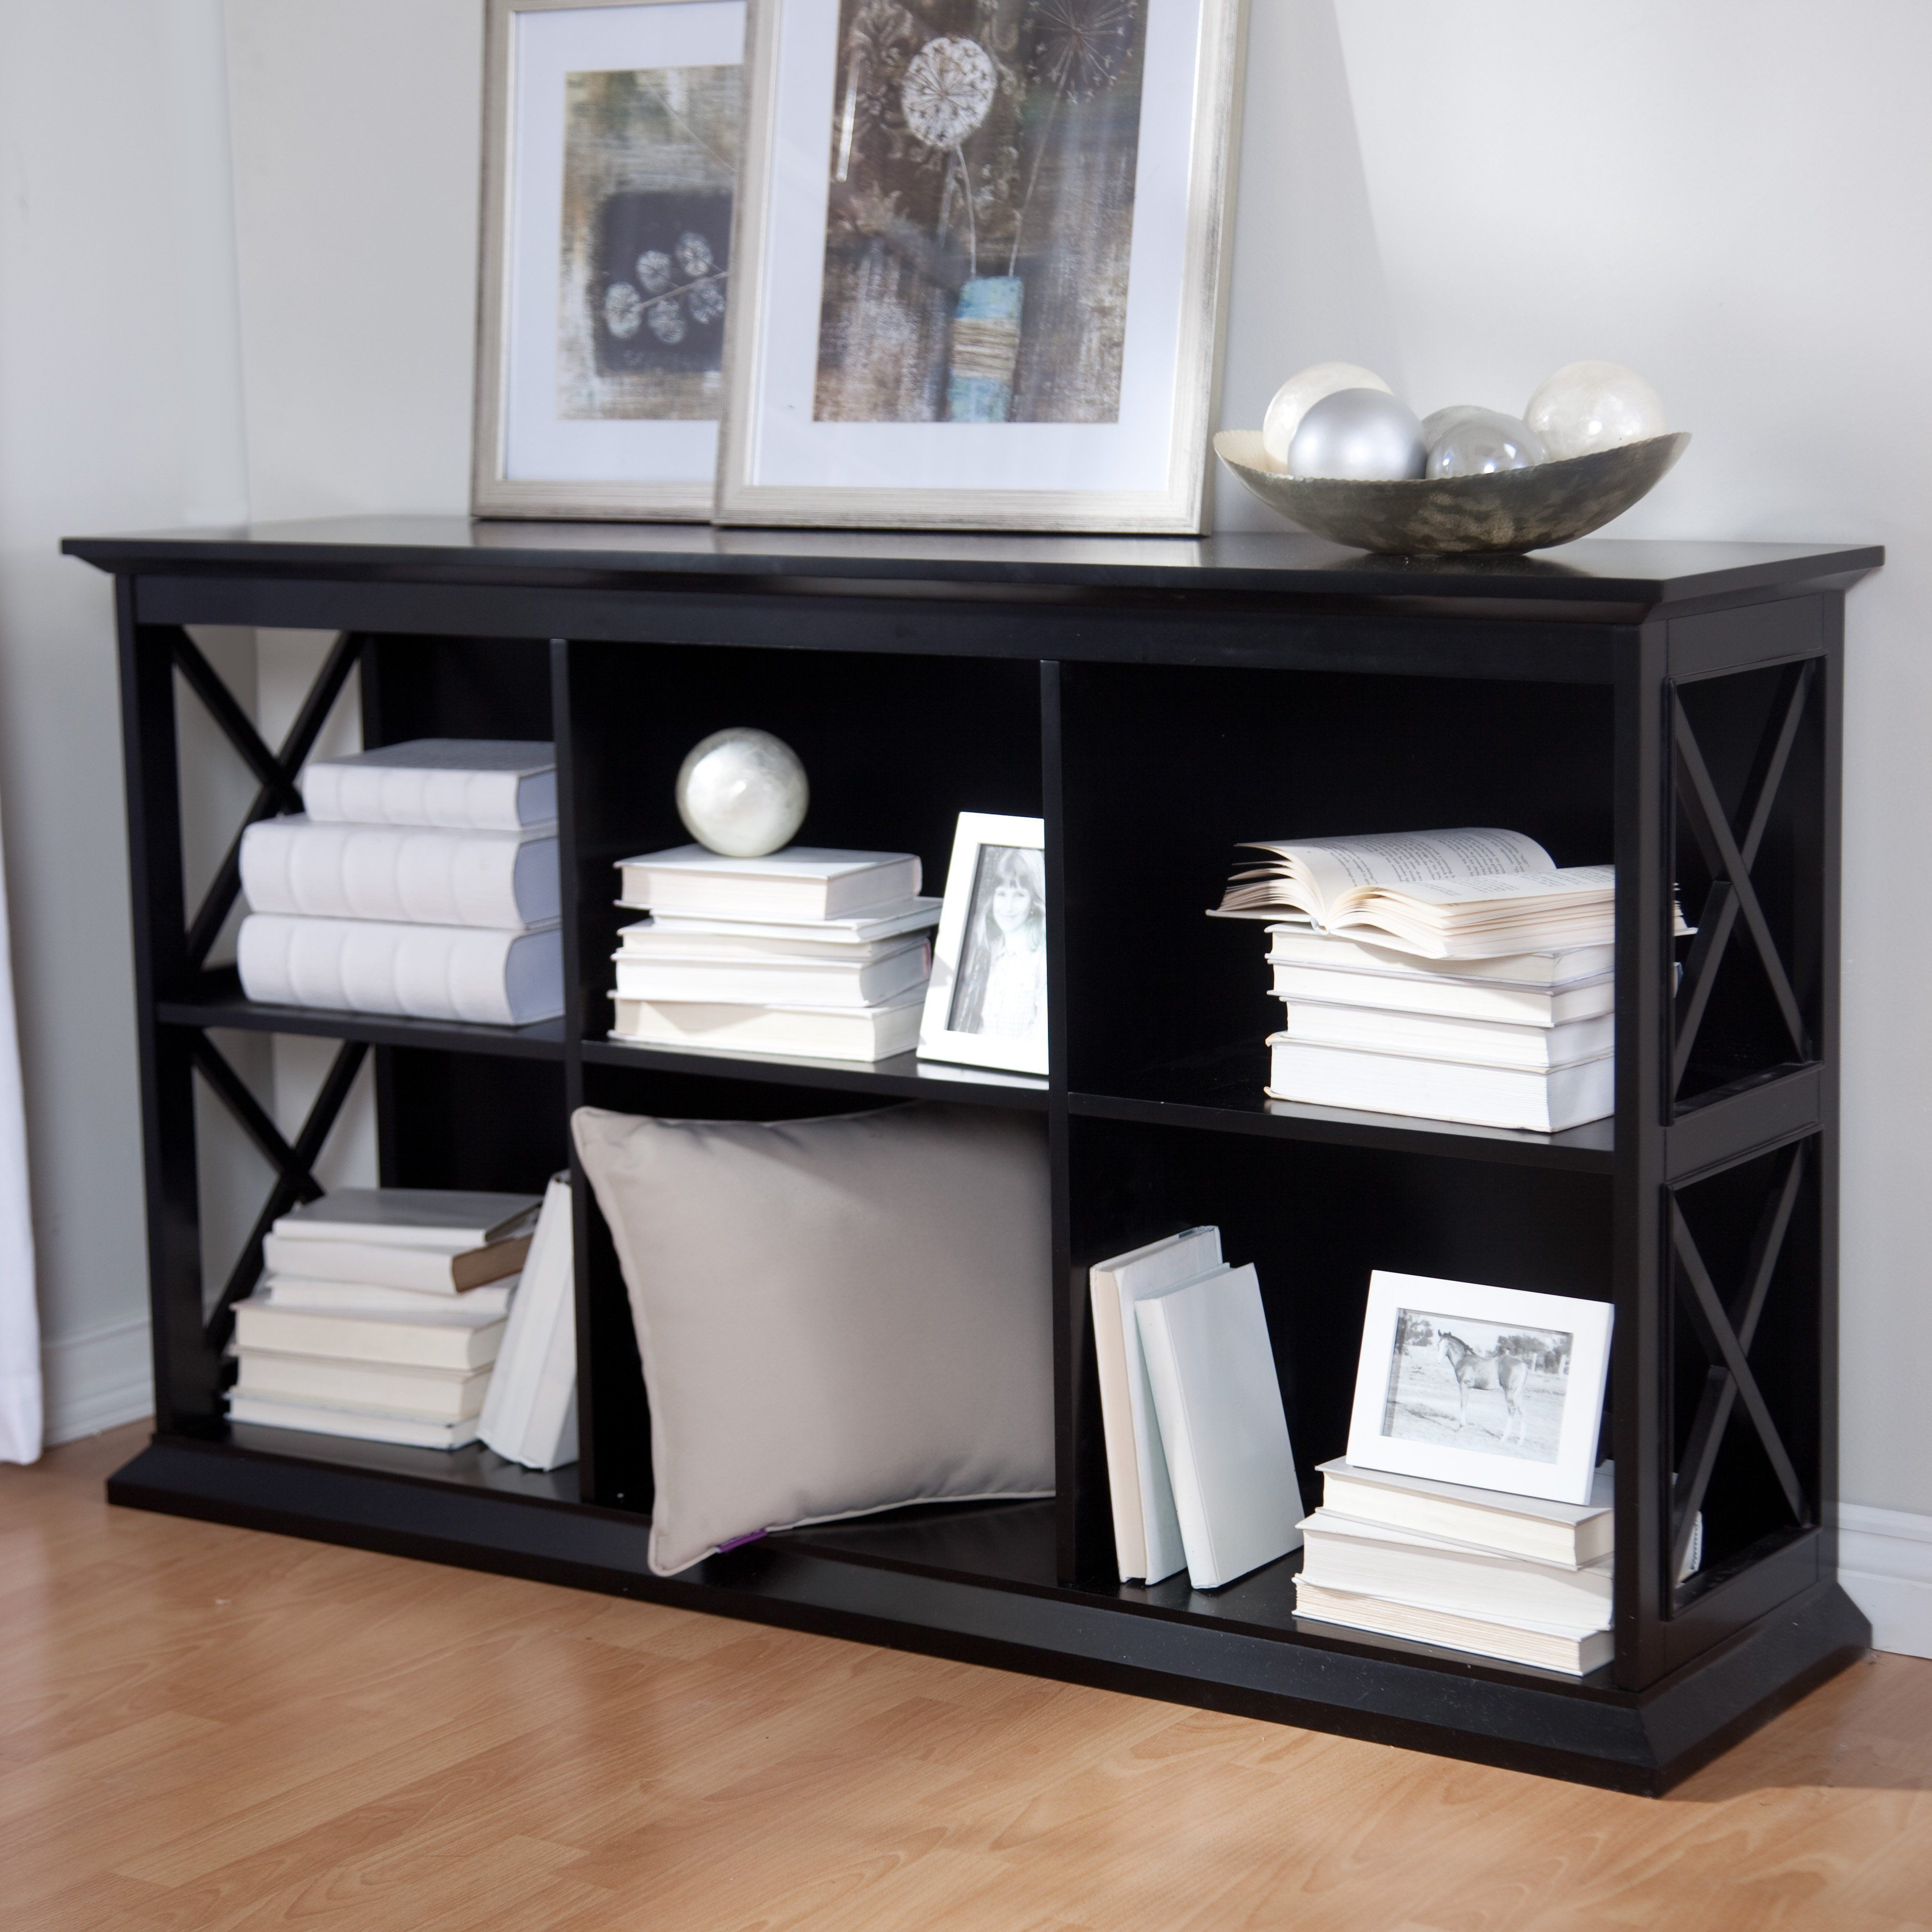 The Hampton Console Table Stackable Bookcase   Add Colorful Organizers From  The Container Store To Organize